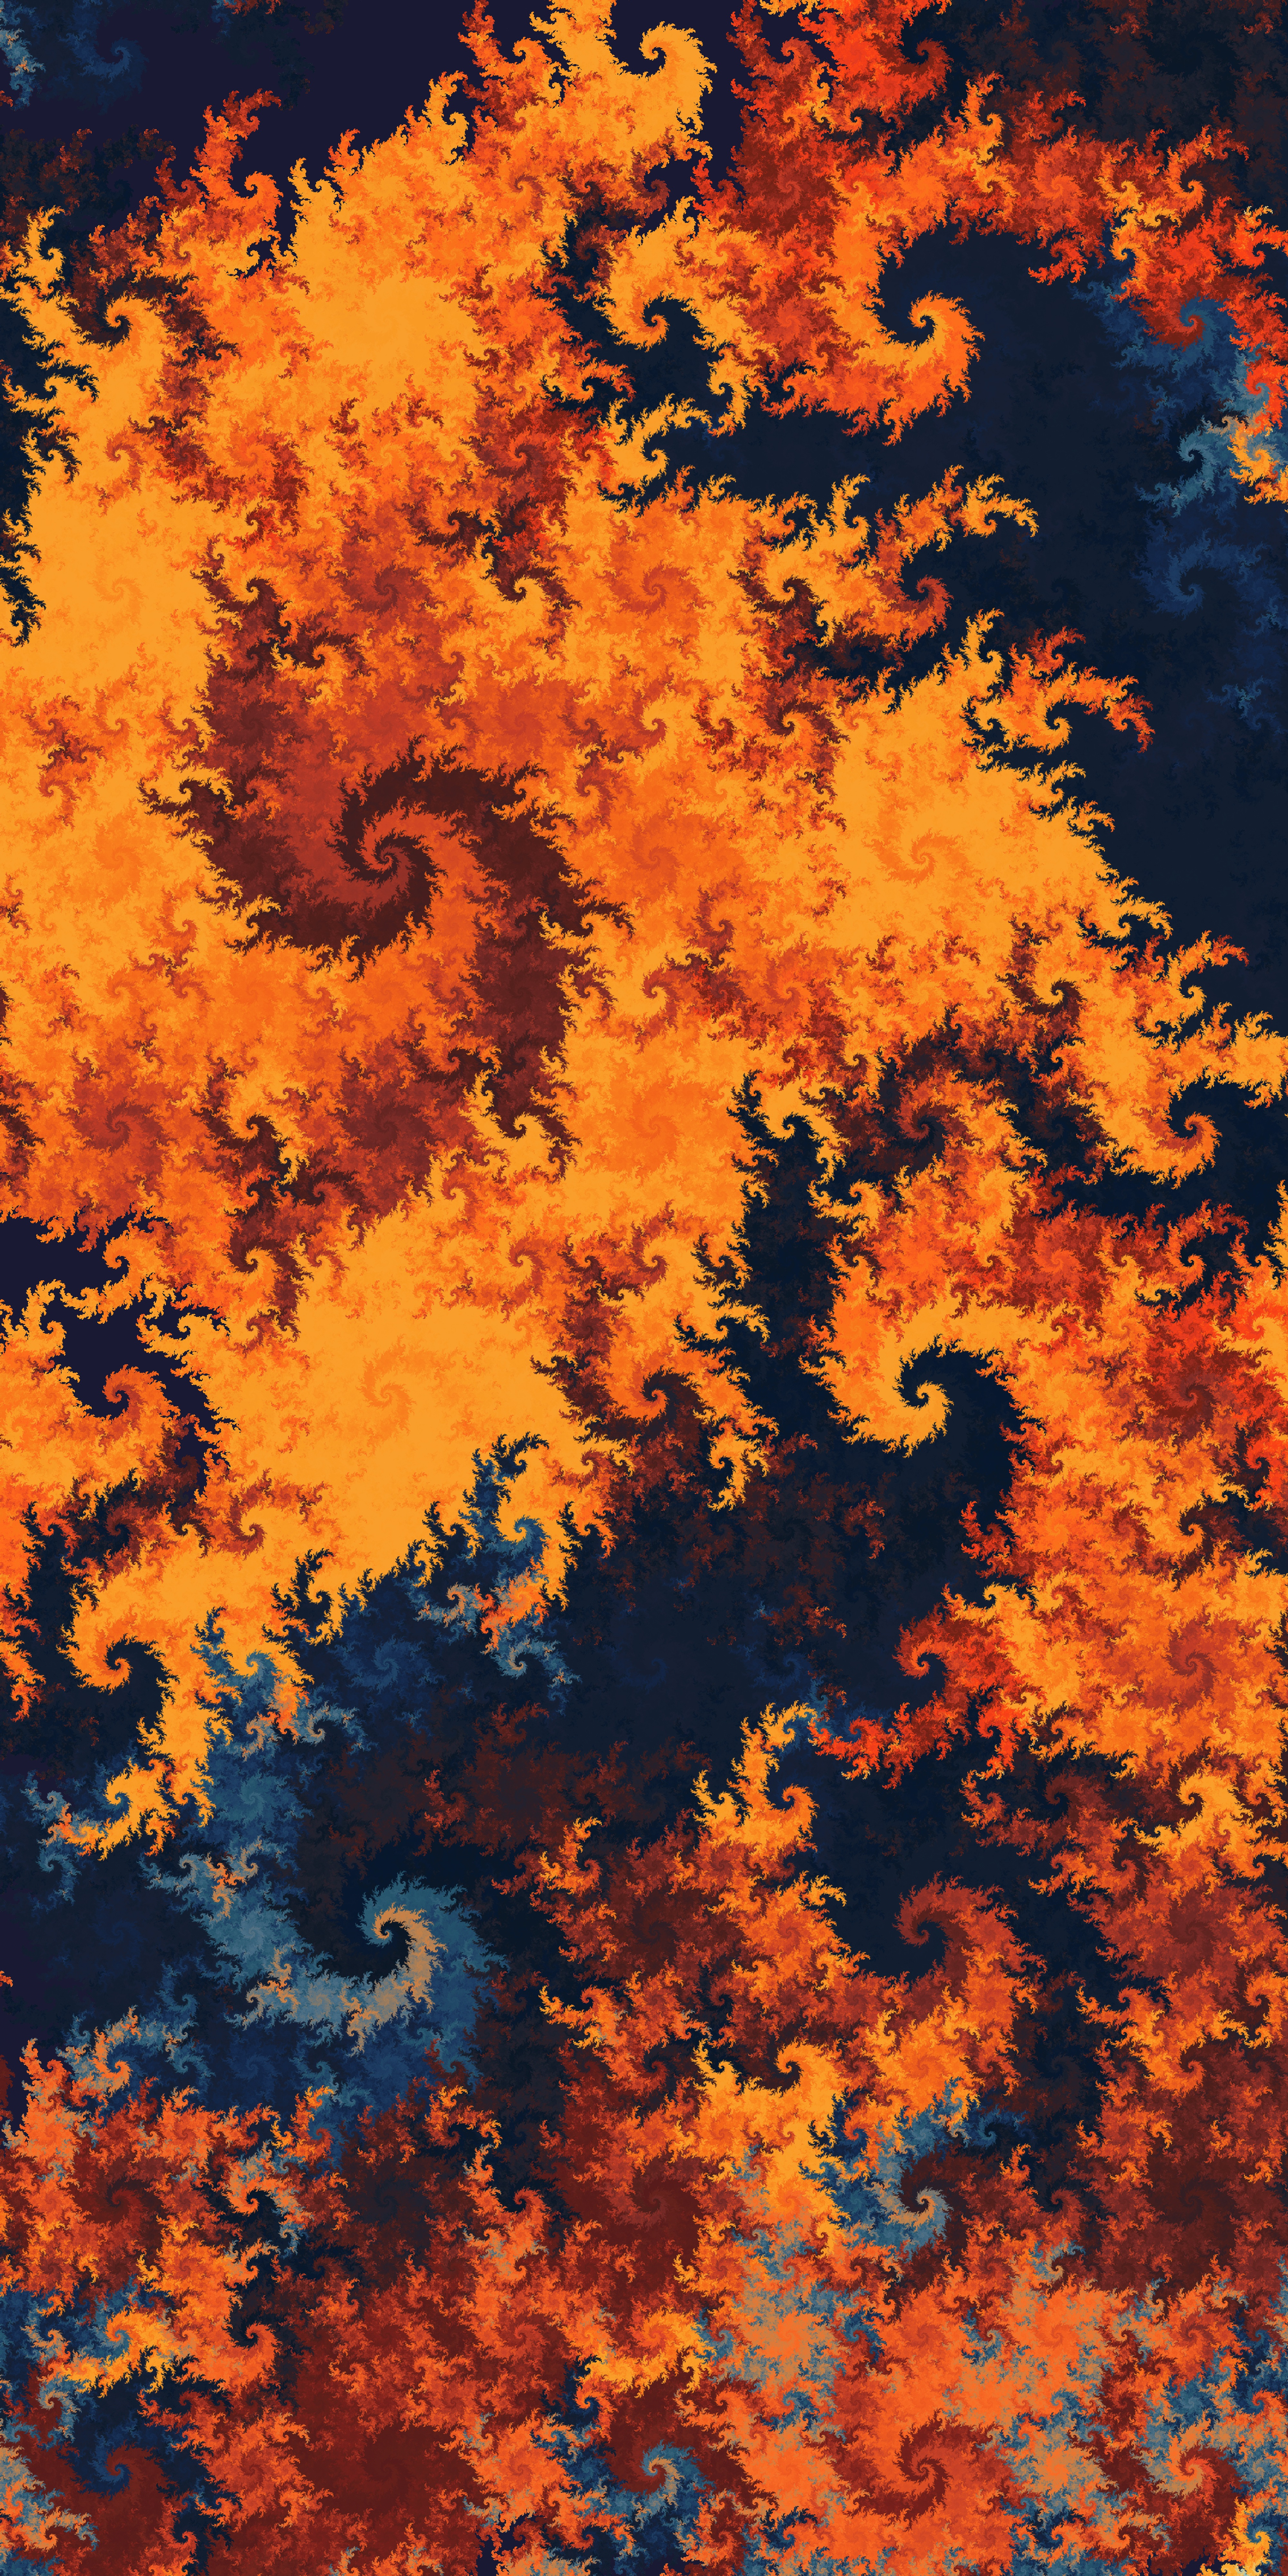 76064 download wallpaper Abstract, Swirling Fractal, Fractal Swirling, Multicolored, Motley, Patterns screensavers and pictures for free